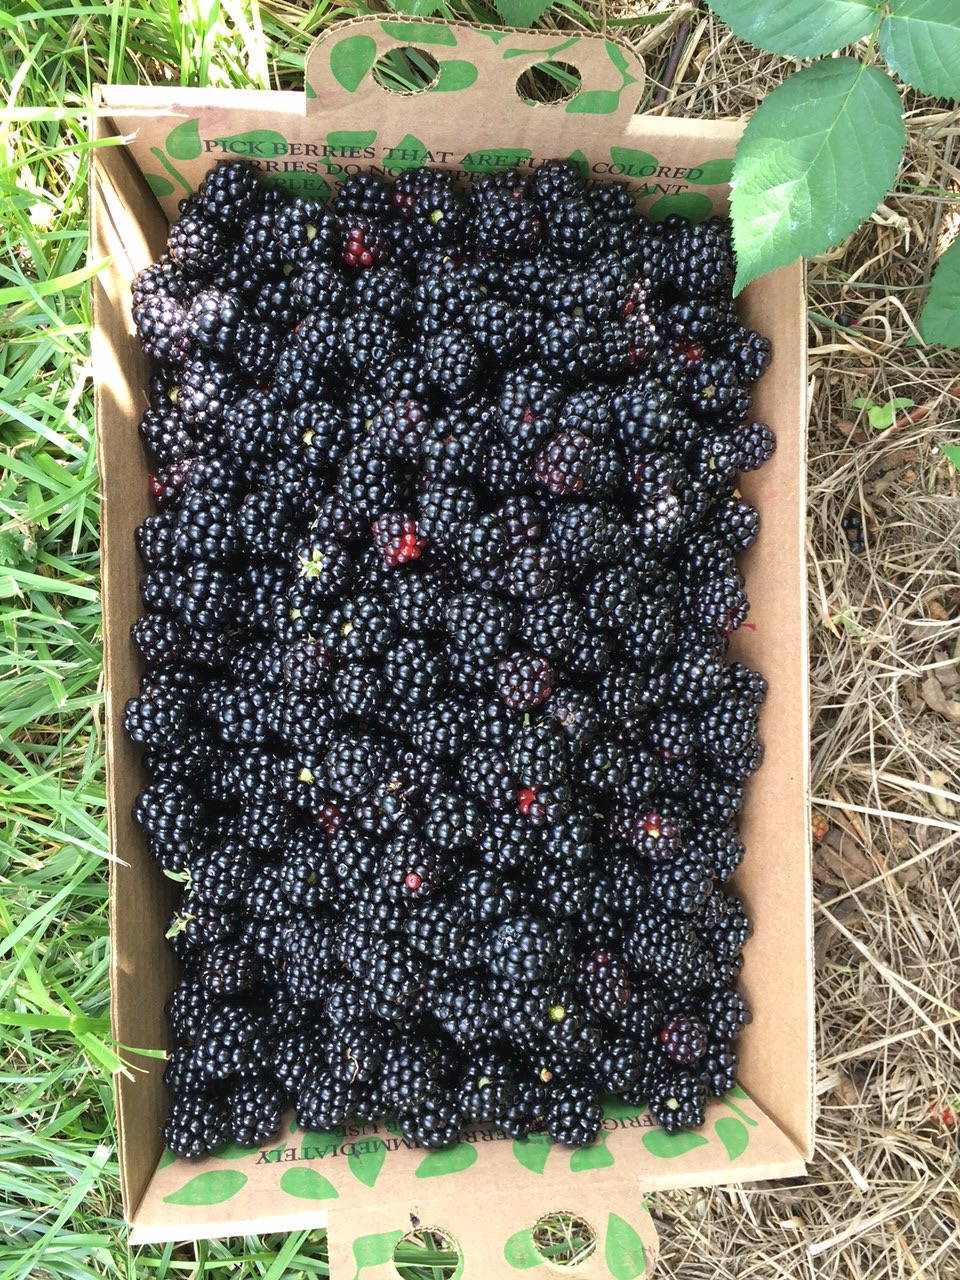 Blackberries or caviar? #nofilter